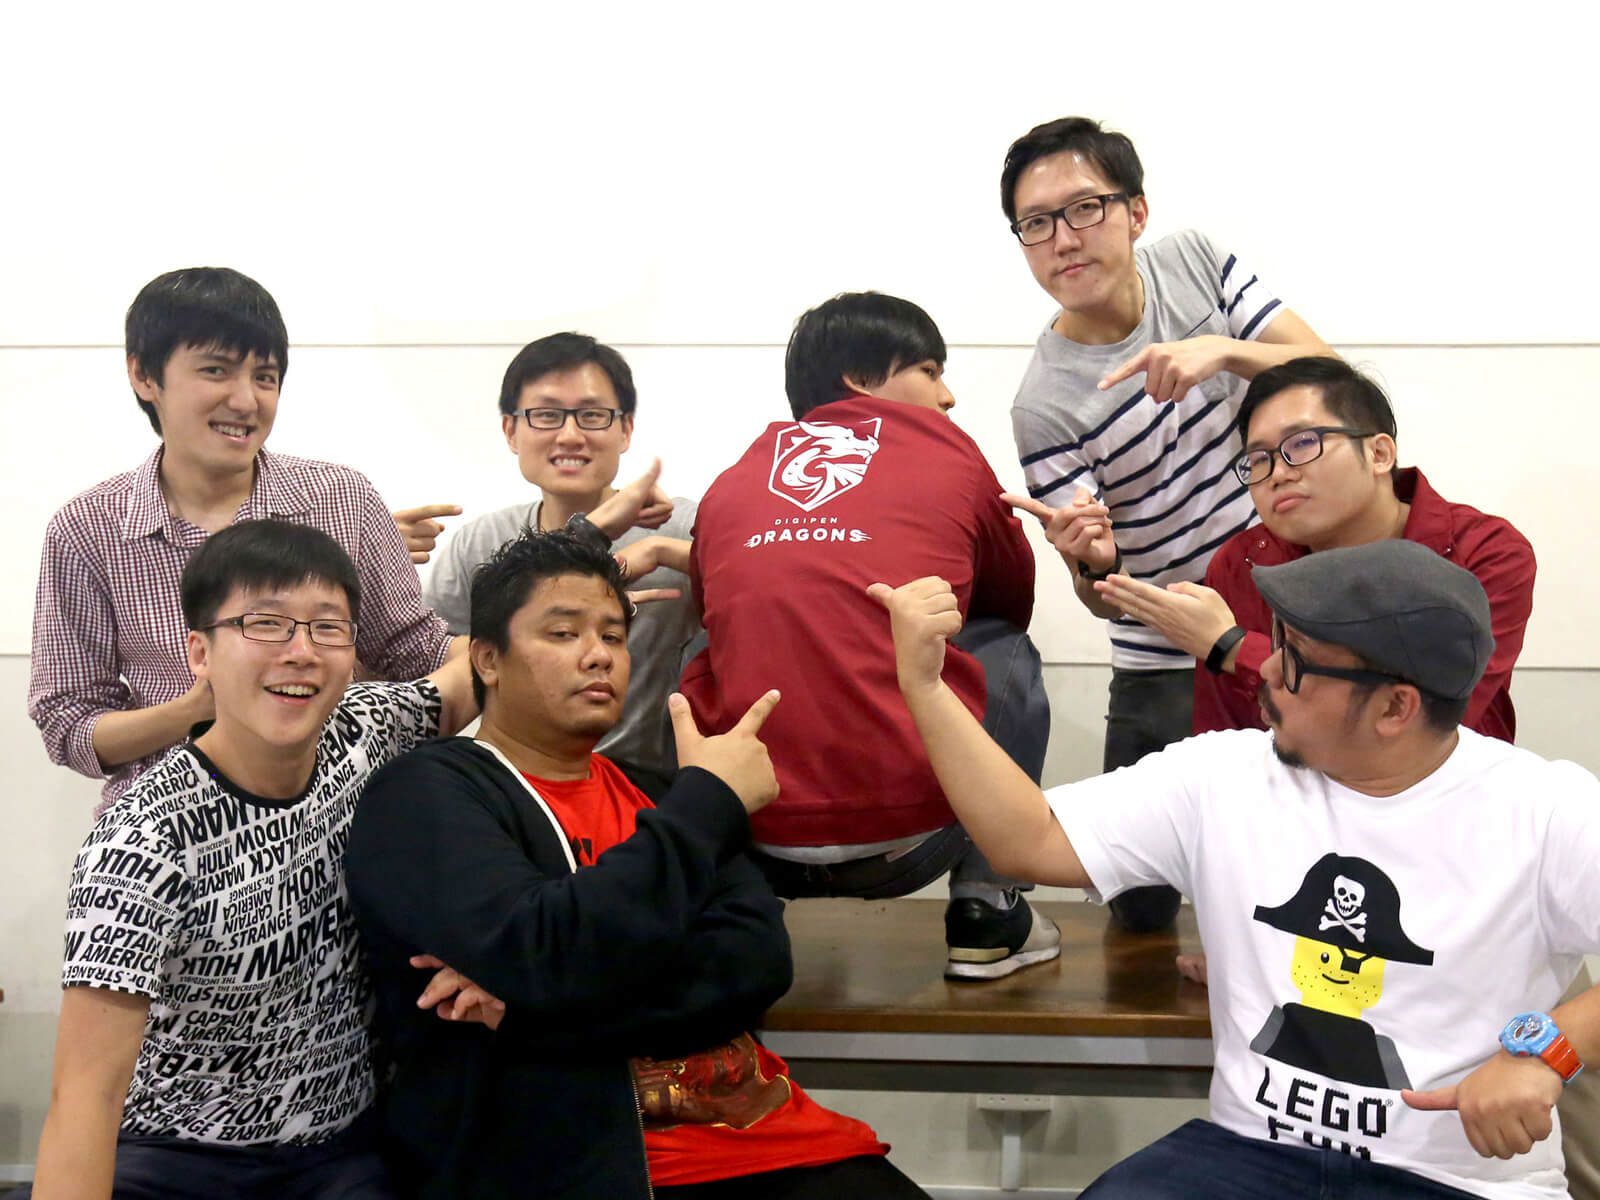 Members of the alumni committee point to the back of another member squatting on a desk who is wearing a red DigiPen shirt